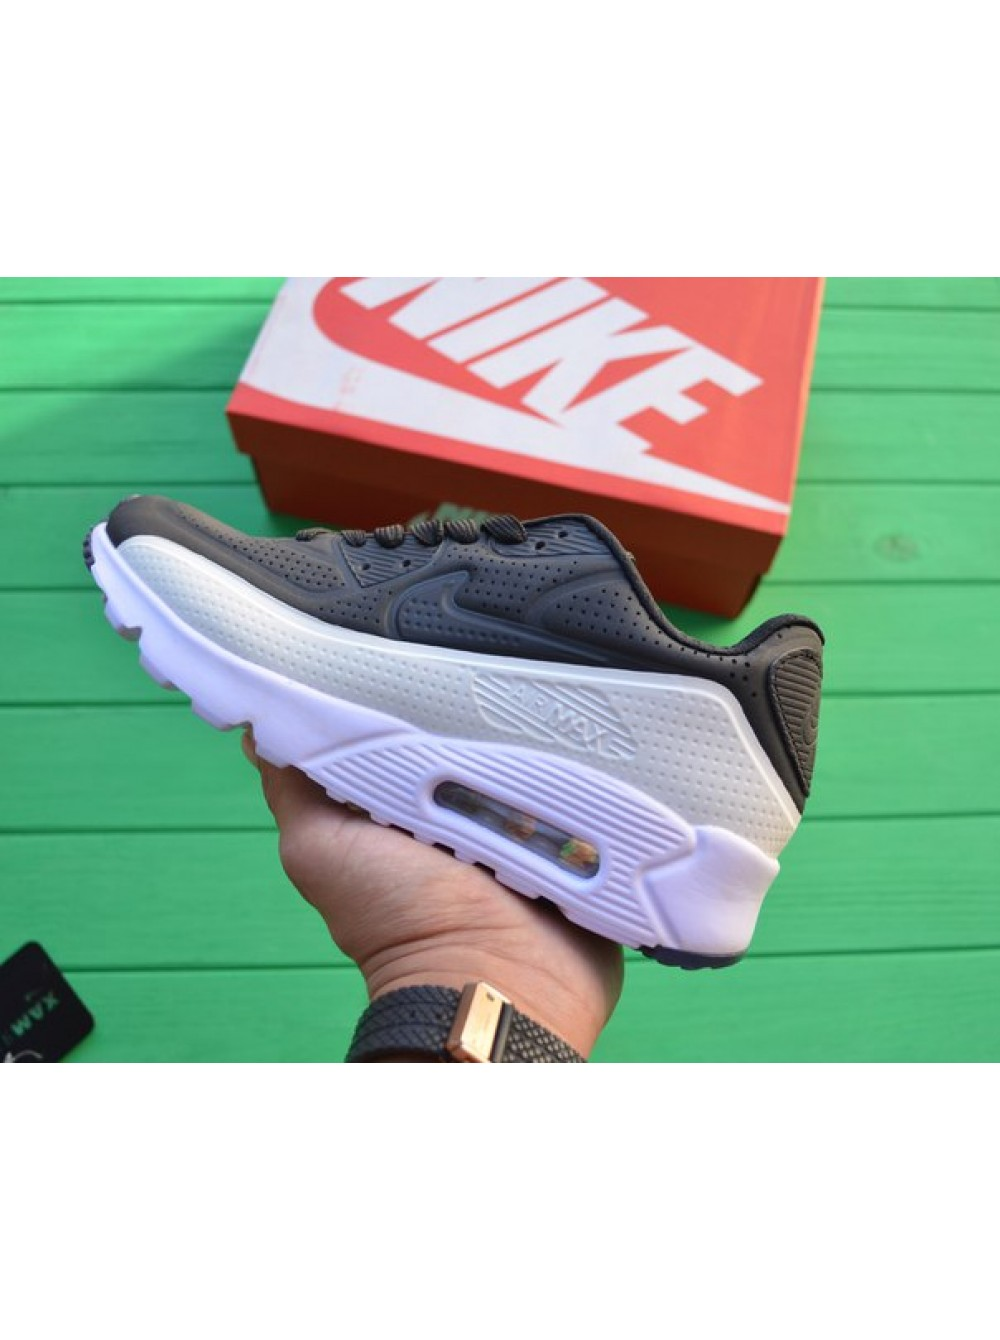 size 40 6db8c d8be6 Кроссовки Nike Air Max 90 Ultra Moire Two Tone Black